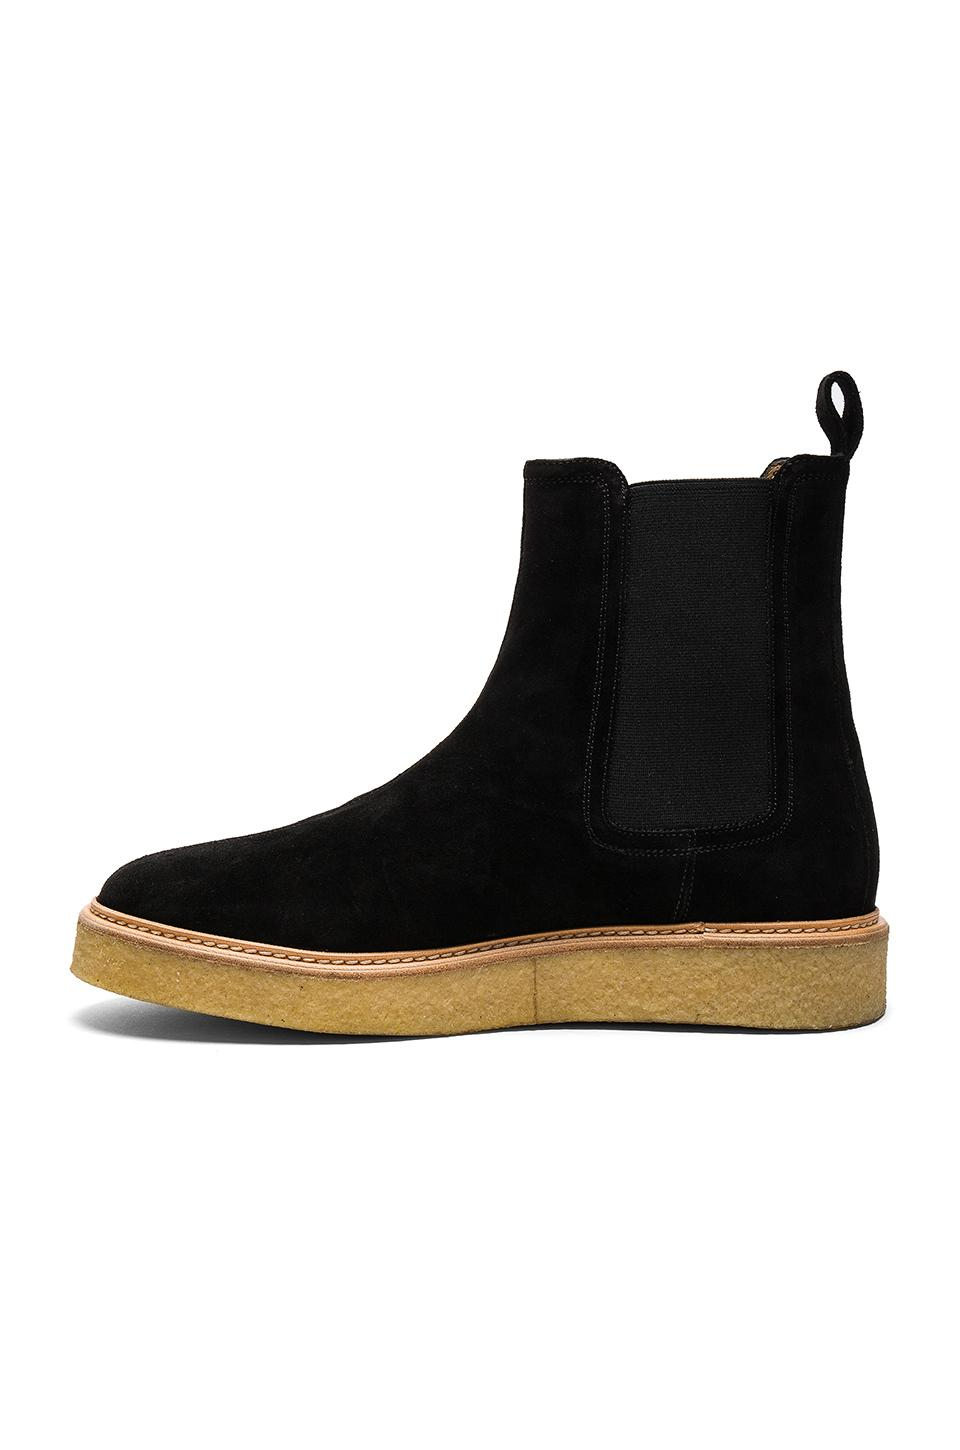 Represent Wedge Boots In Black Lyst